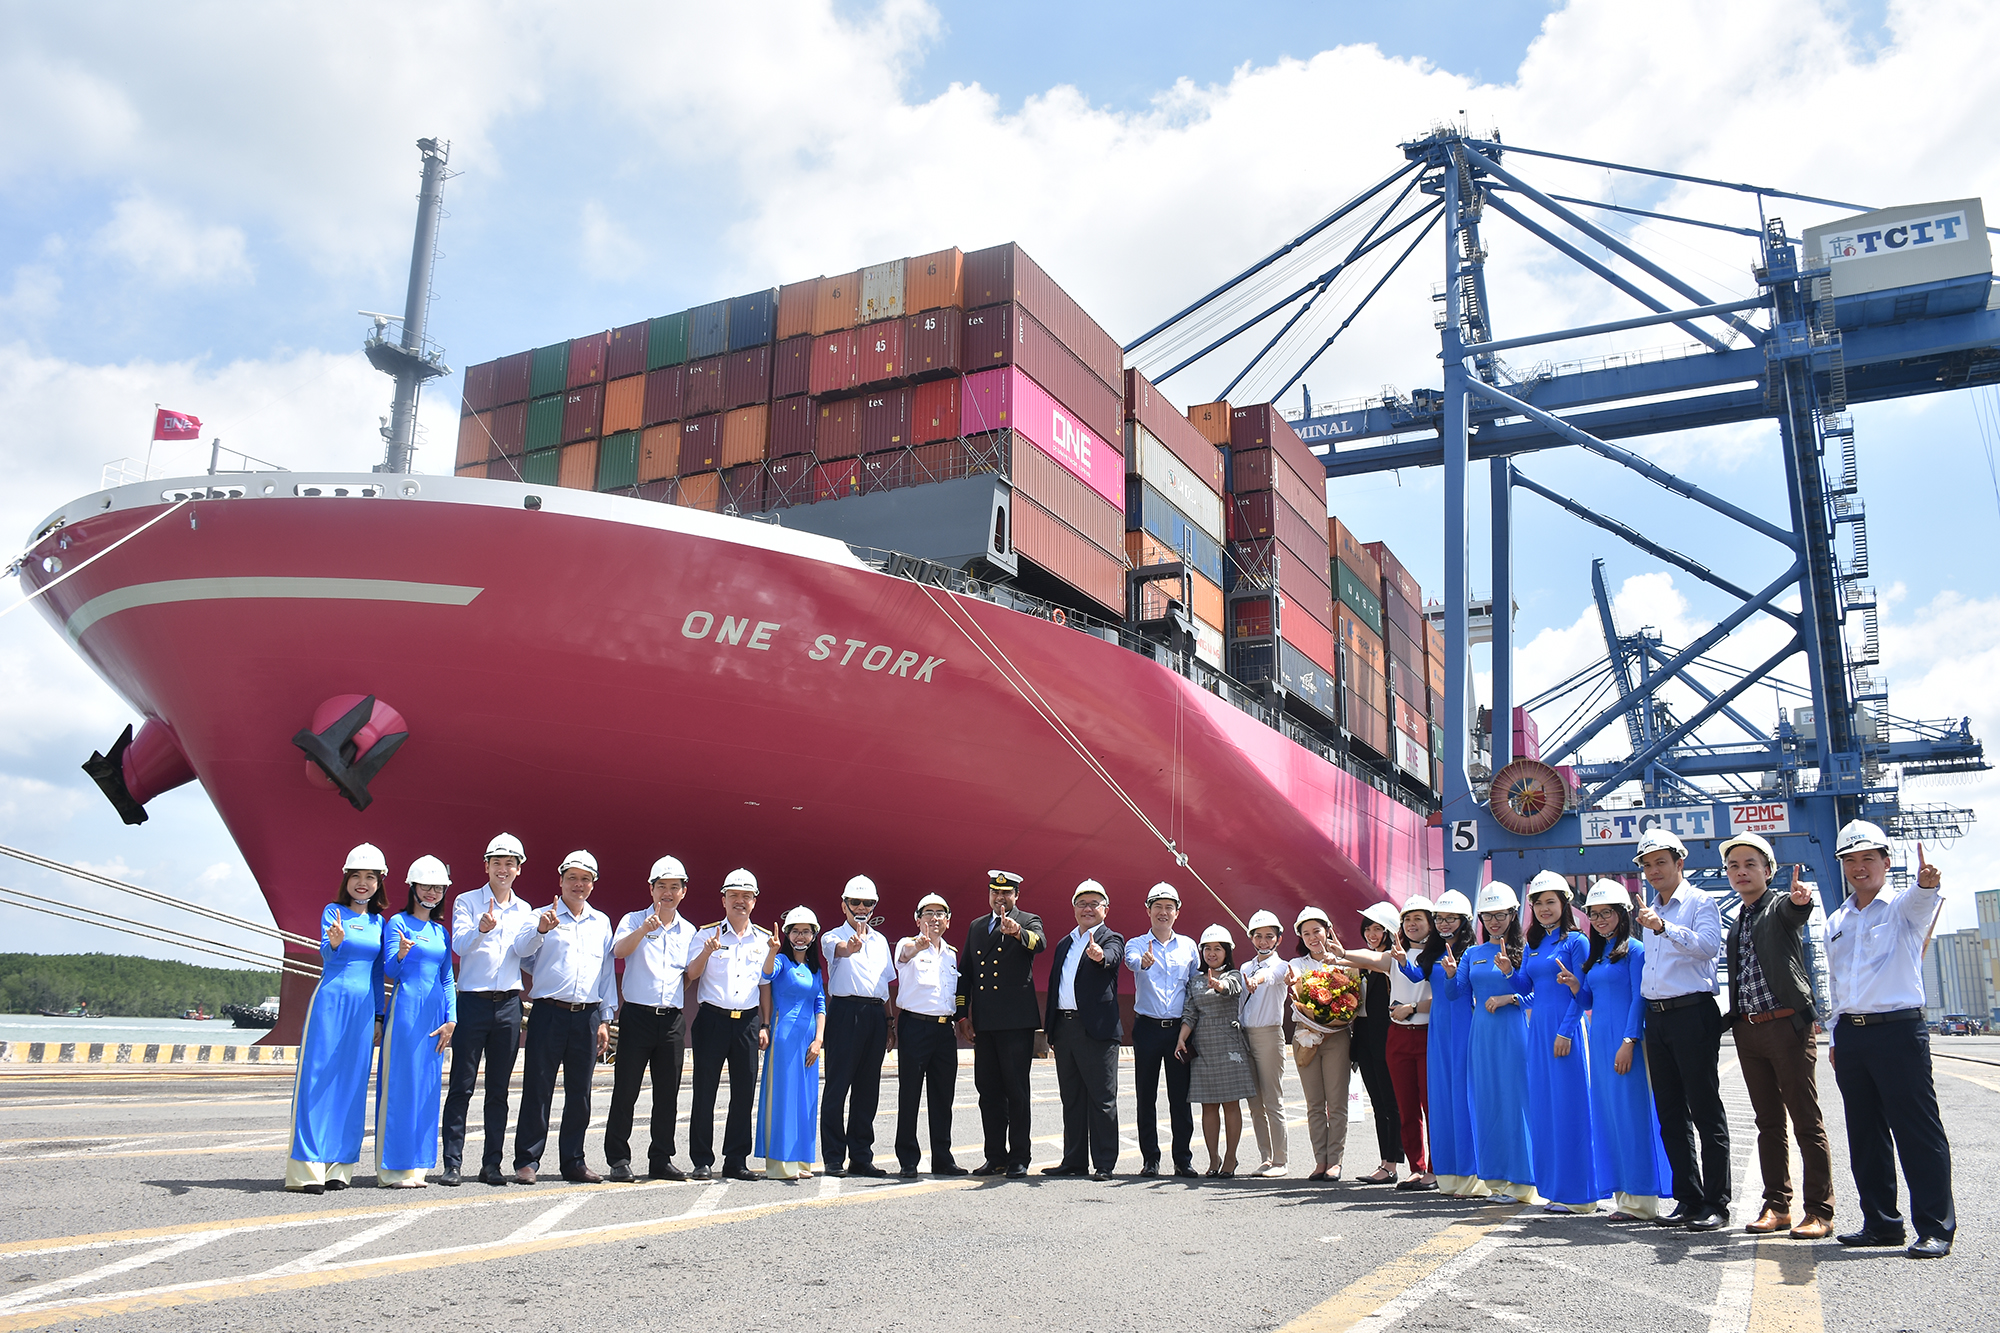 TAN CANG - CAI MEP INTERNATIONAL TERMINAL SUCCESSFULLY WELCOMES MAIDEN CALL OF ONE STORK – THE FIRST NEWLY BUILT MAGENTA CONTAINERSHIP.